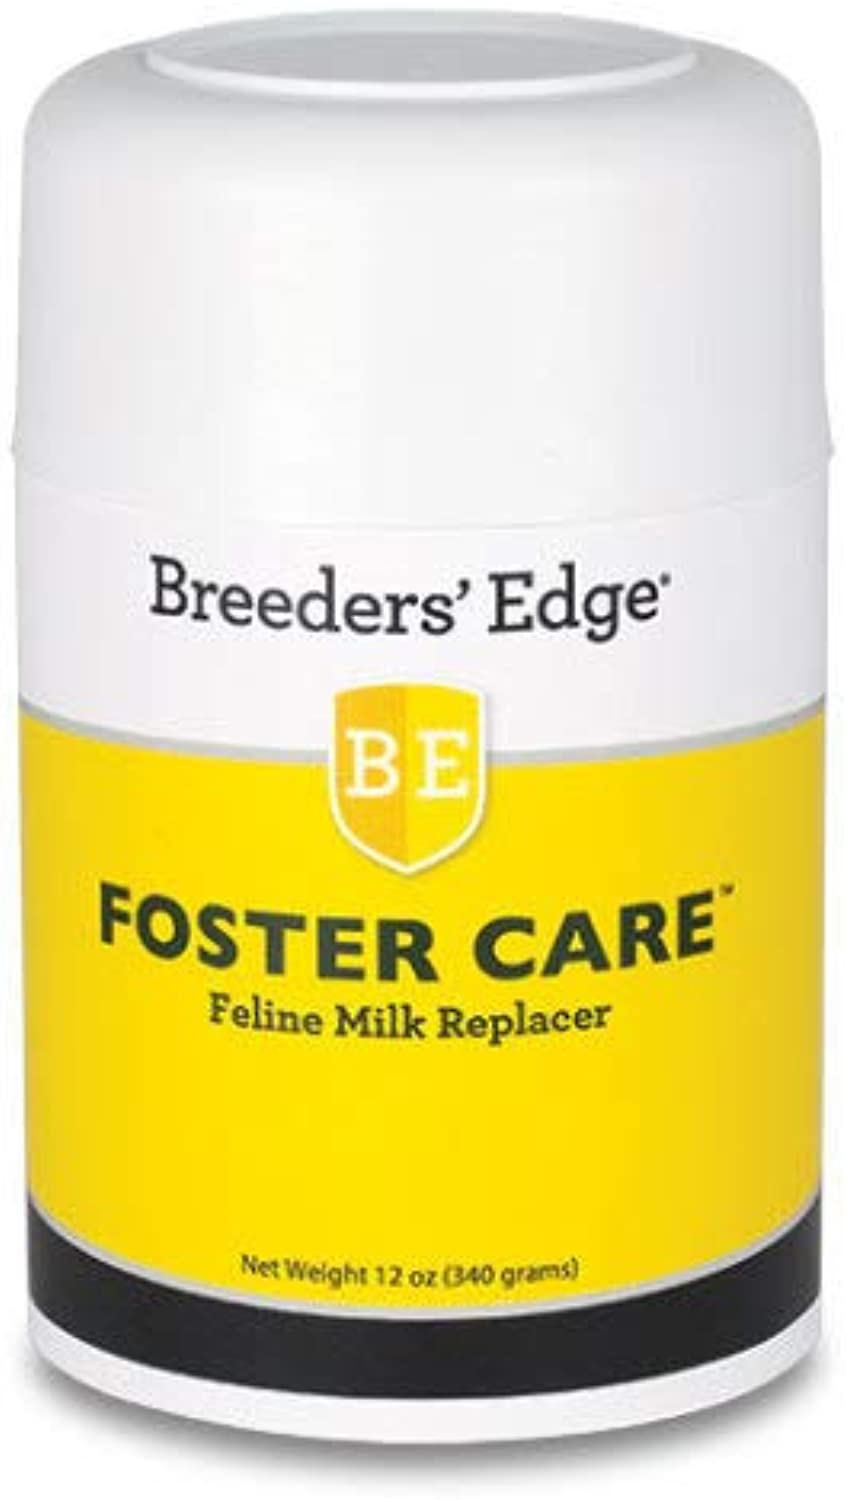 Revival Animal Health Breeders' Edge Foster Care Replacer Milk for Cats and Kittens 12 oz